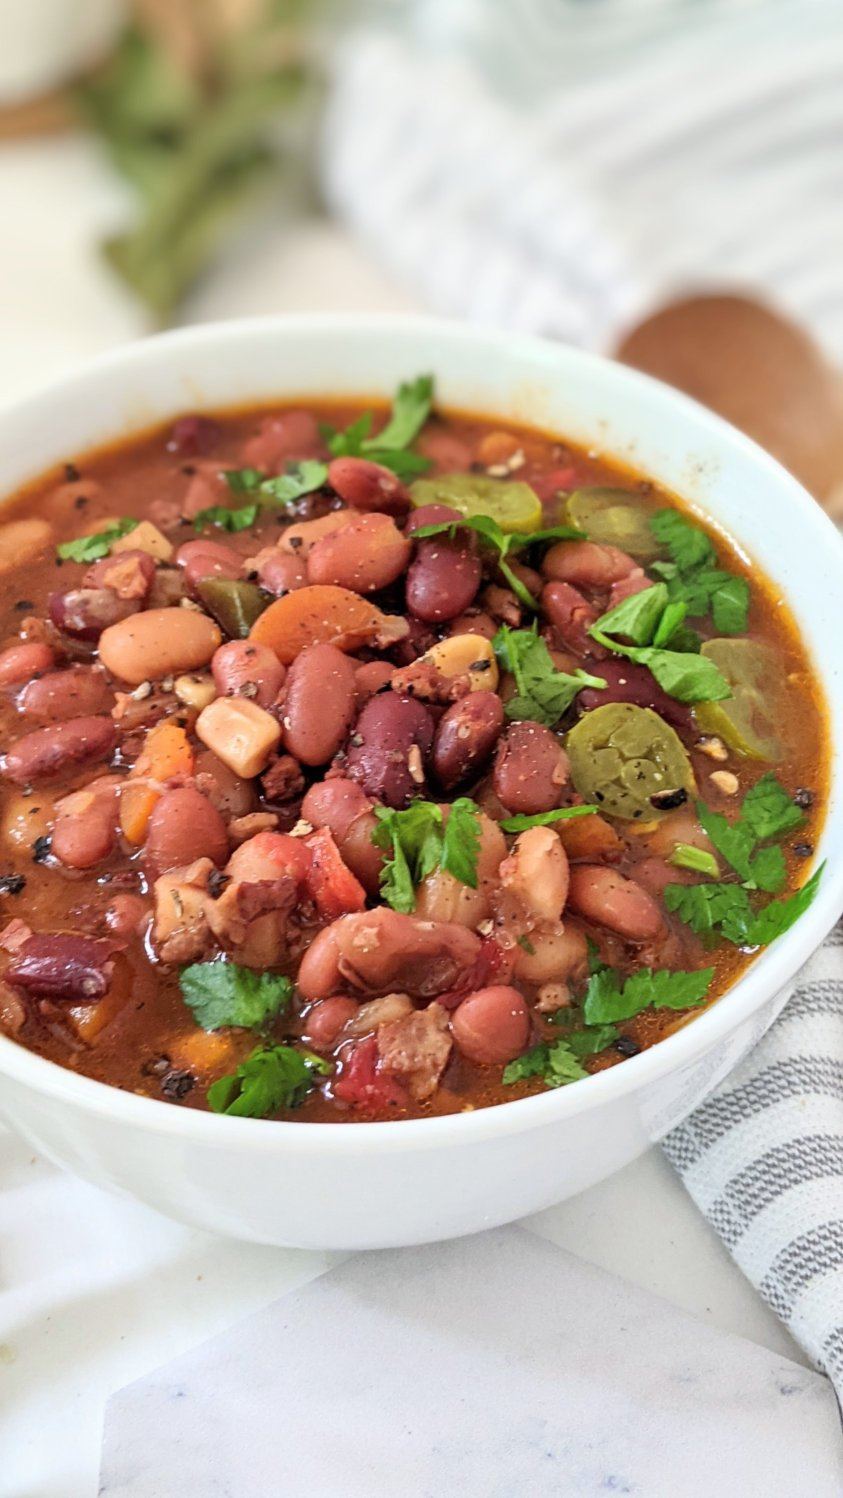 filling vegan stew recipes vegetarian lunches or dinners with beans bbq recipes healthy vegetariain lunches to keep you full gluten free bbq beans recipes with paleo bbq sauce